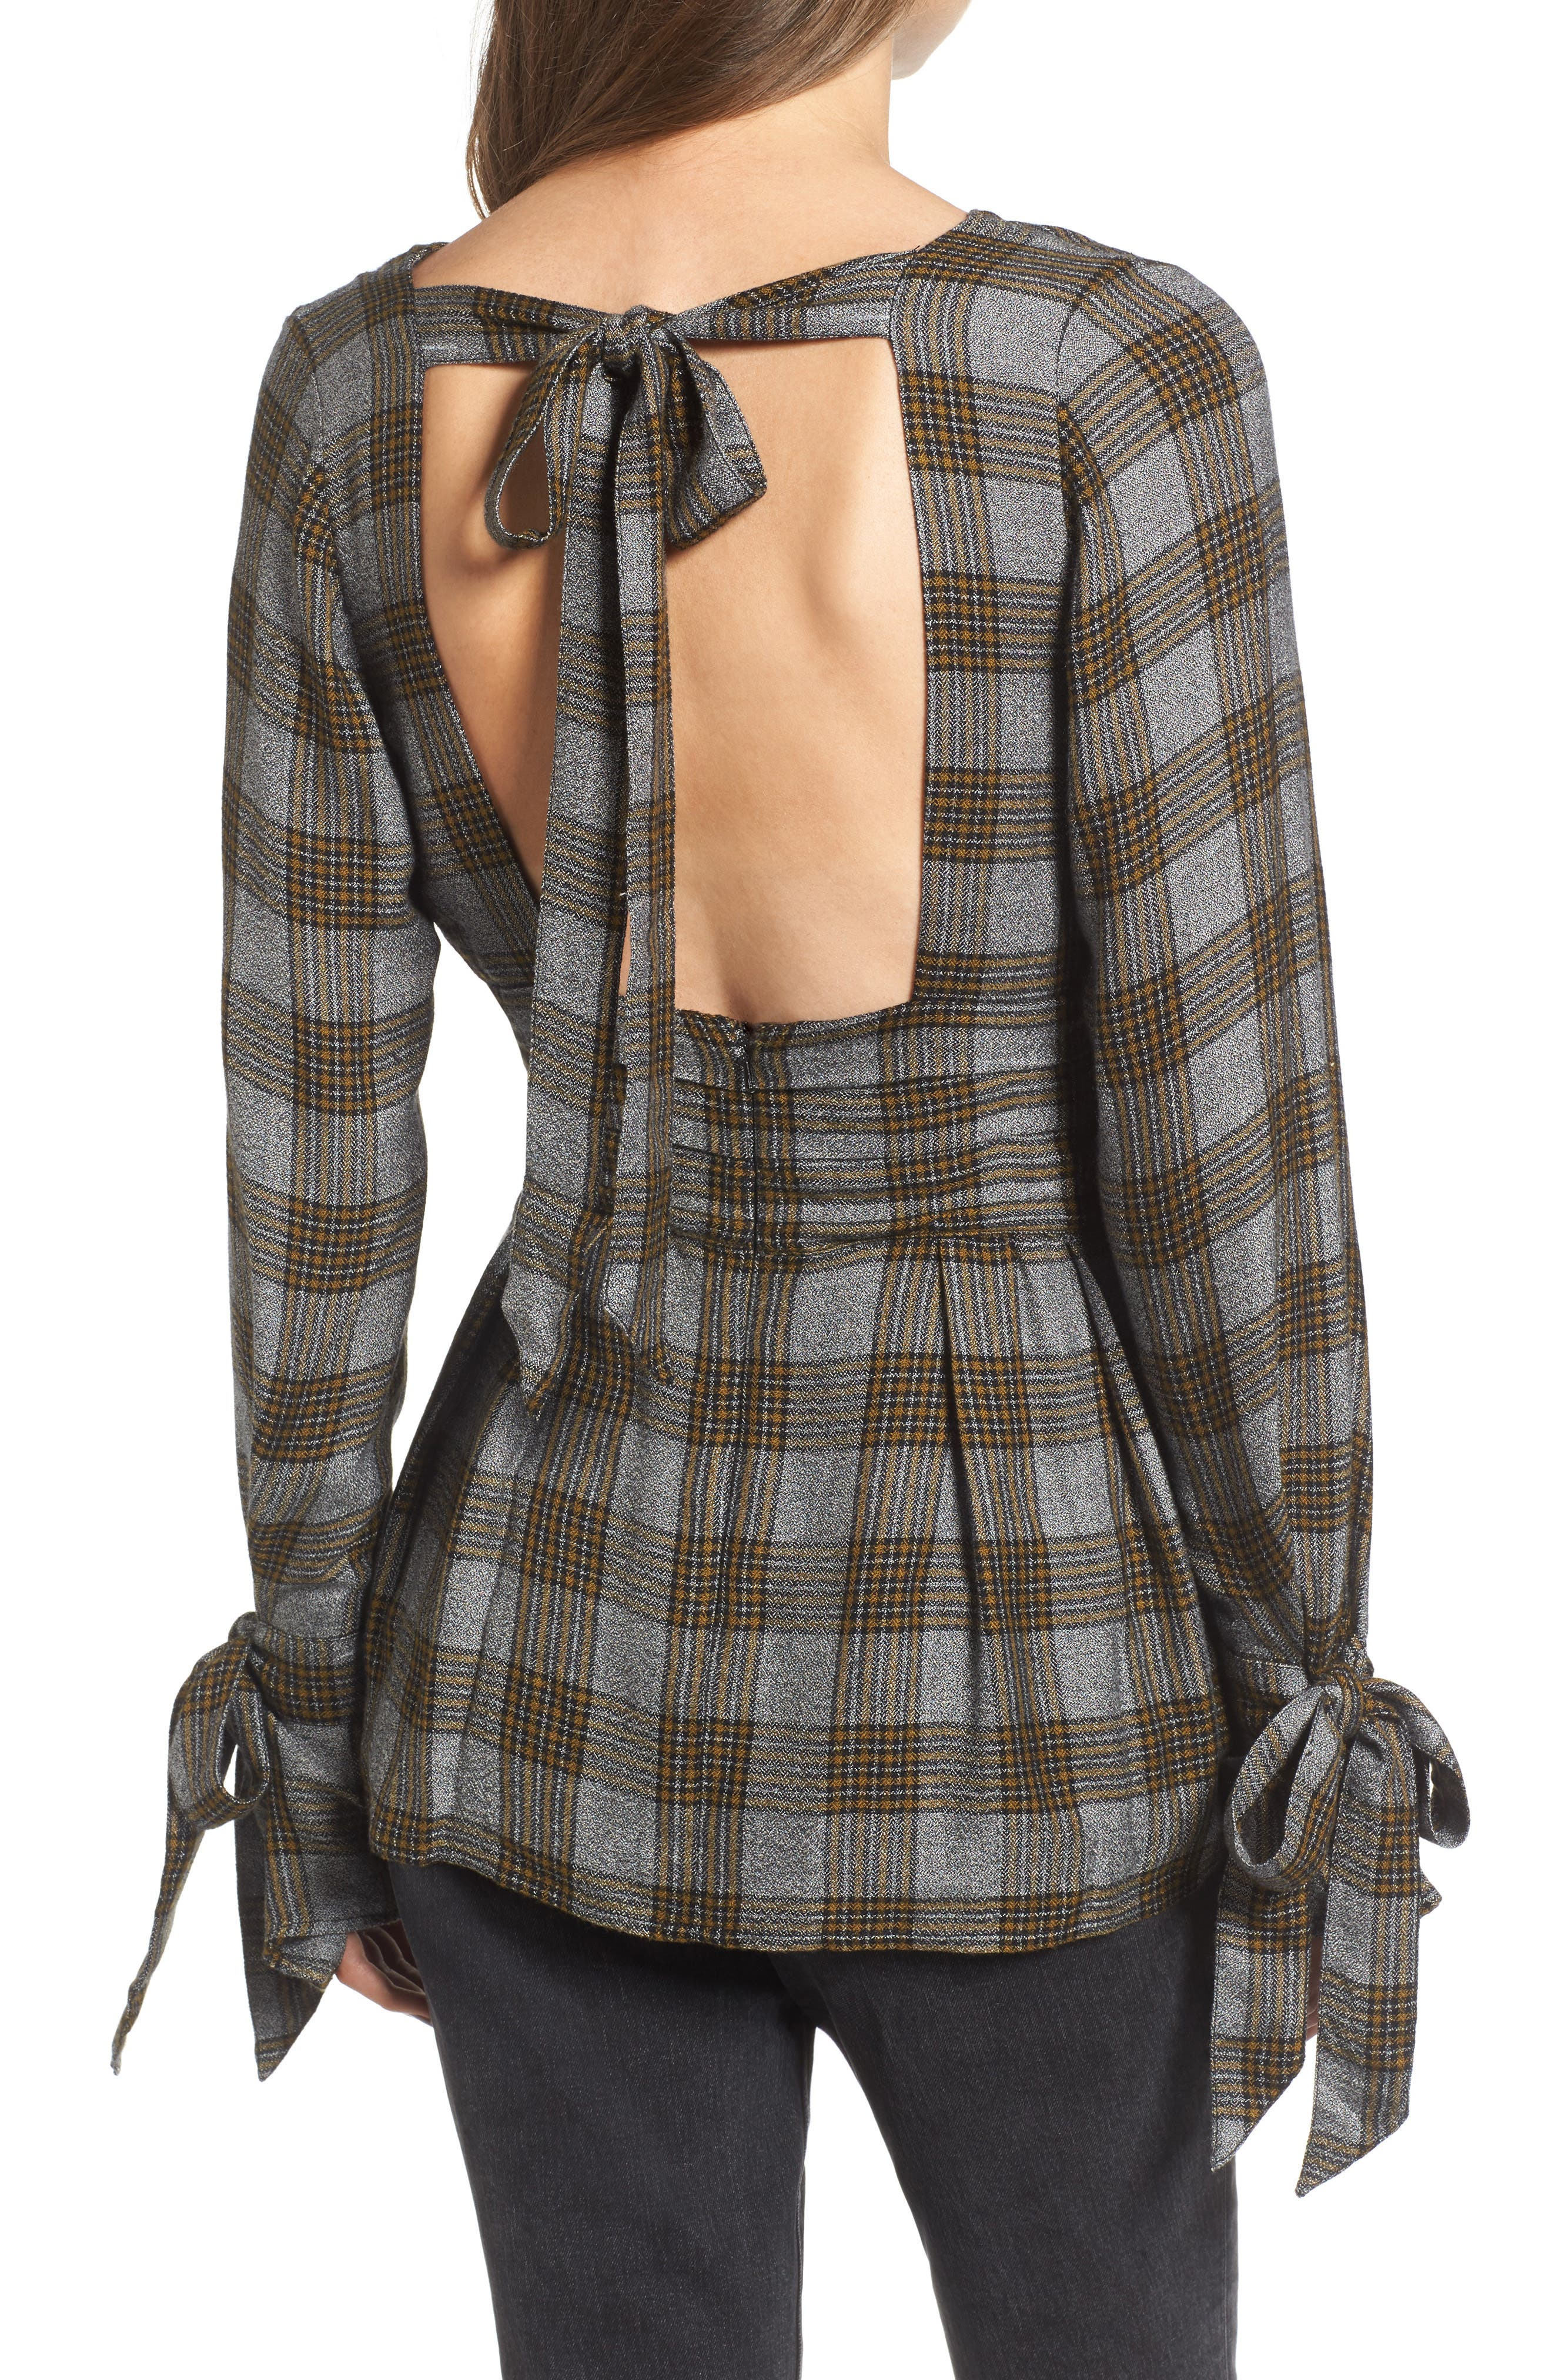 x Something Navy Tie Sleeve Top,                             Alternate thumbnail 5, color,                             Olive Breen Check